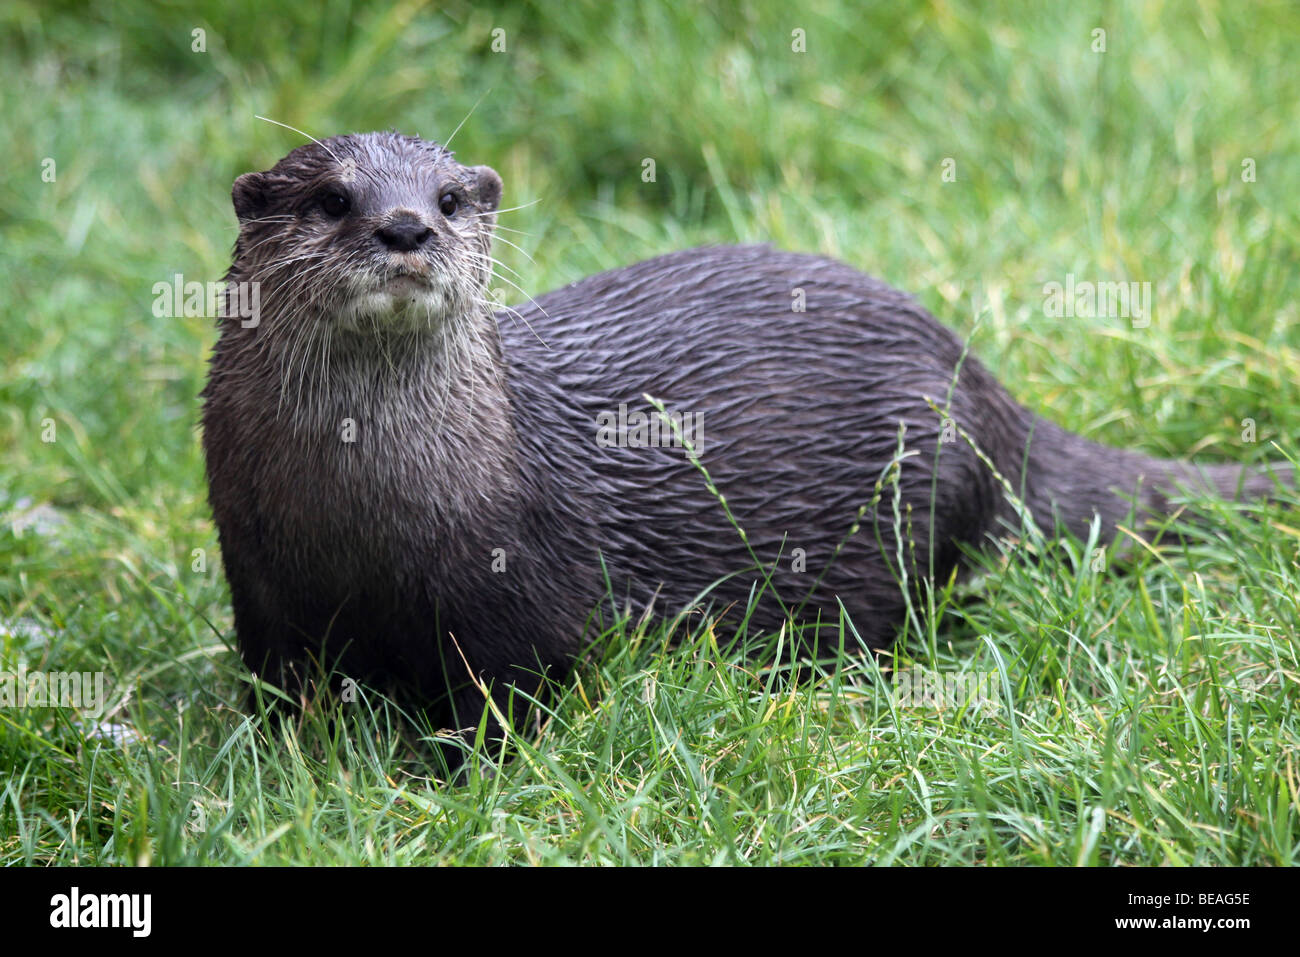 Oriental Small-clawed Otter Aonyx cinerea In Grass Taken At Martin Mere WWT, Lancashire UK - Stock Image